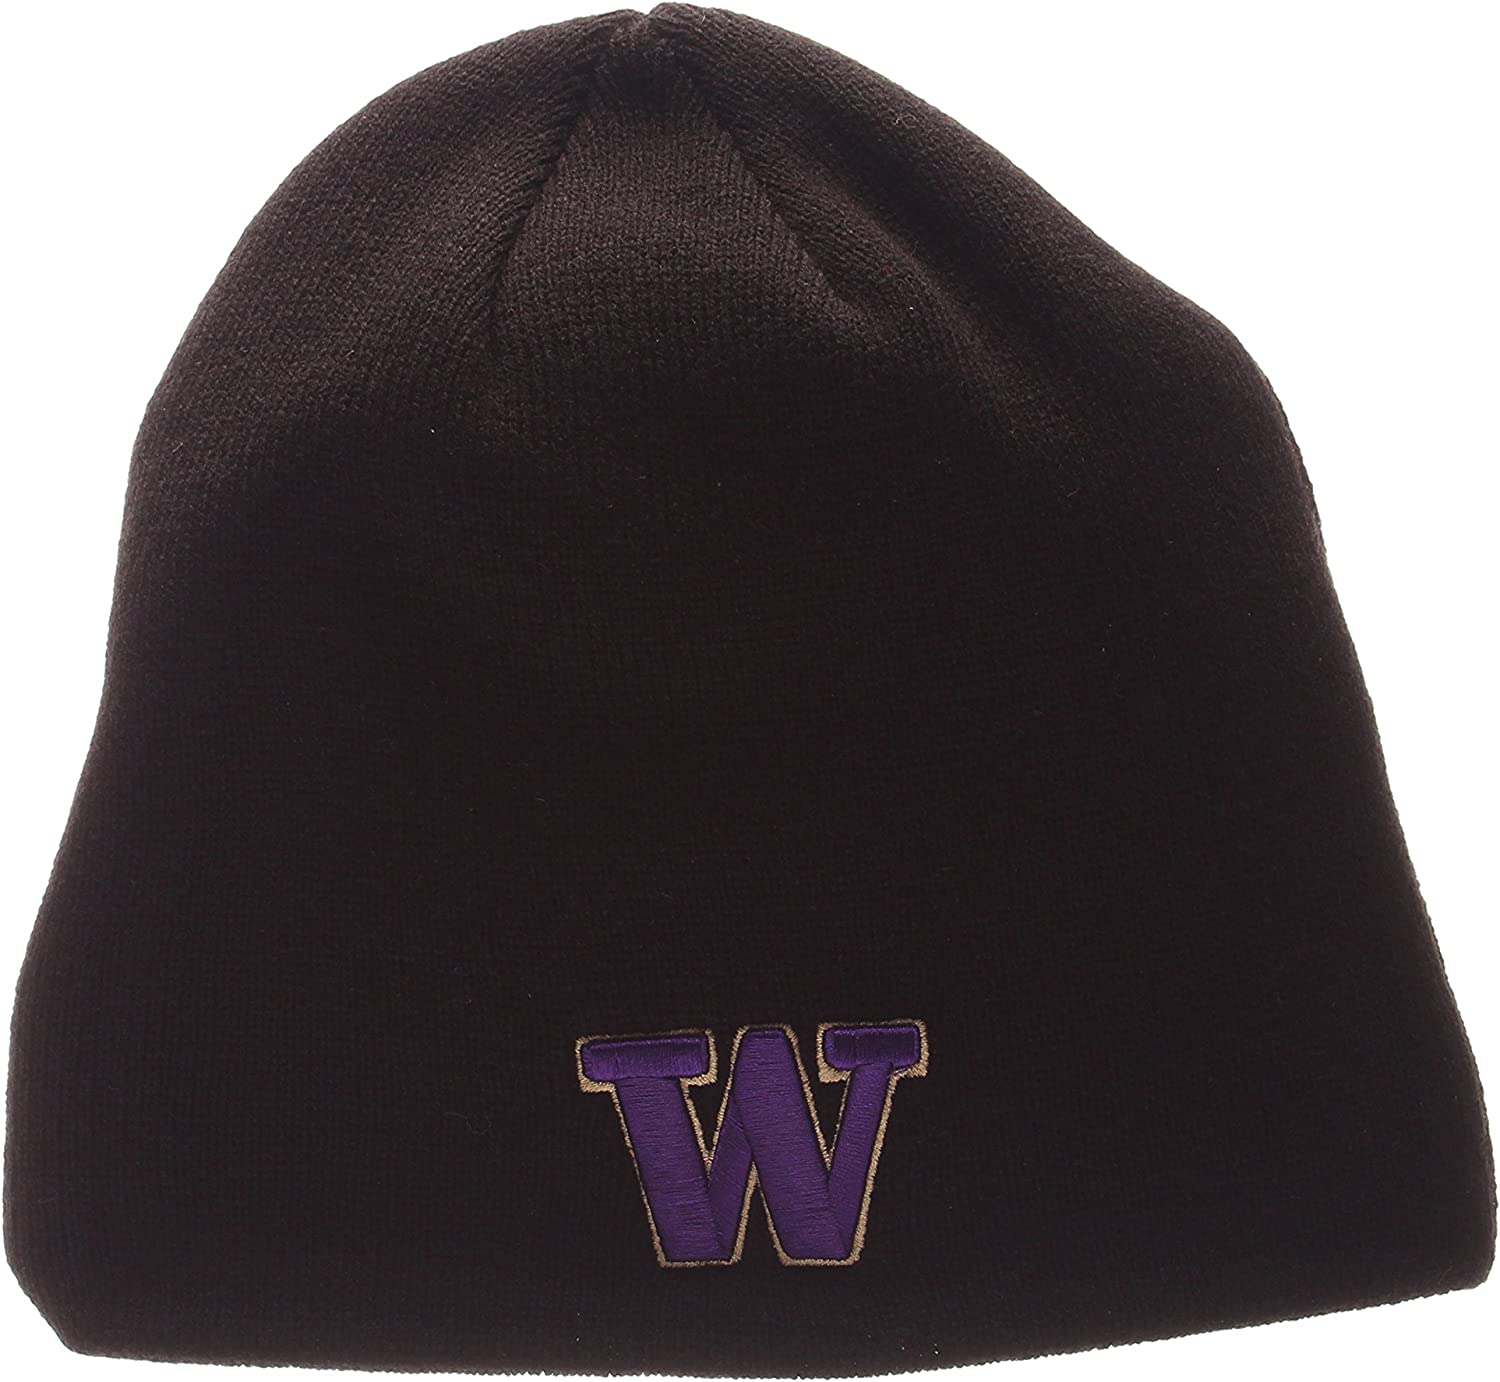 Zephyr NCAA Winter Knit Toque Cap ZHATS Edge Skull Cuffless Classic Beanie Hat